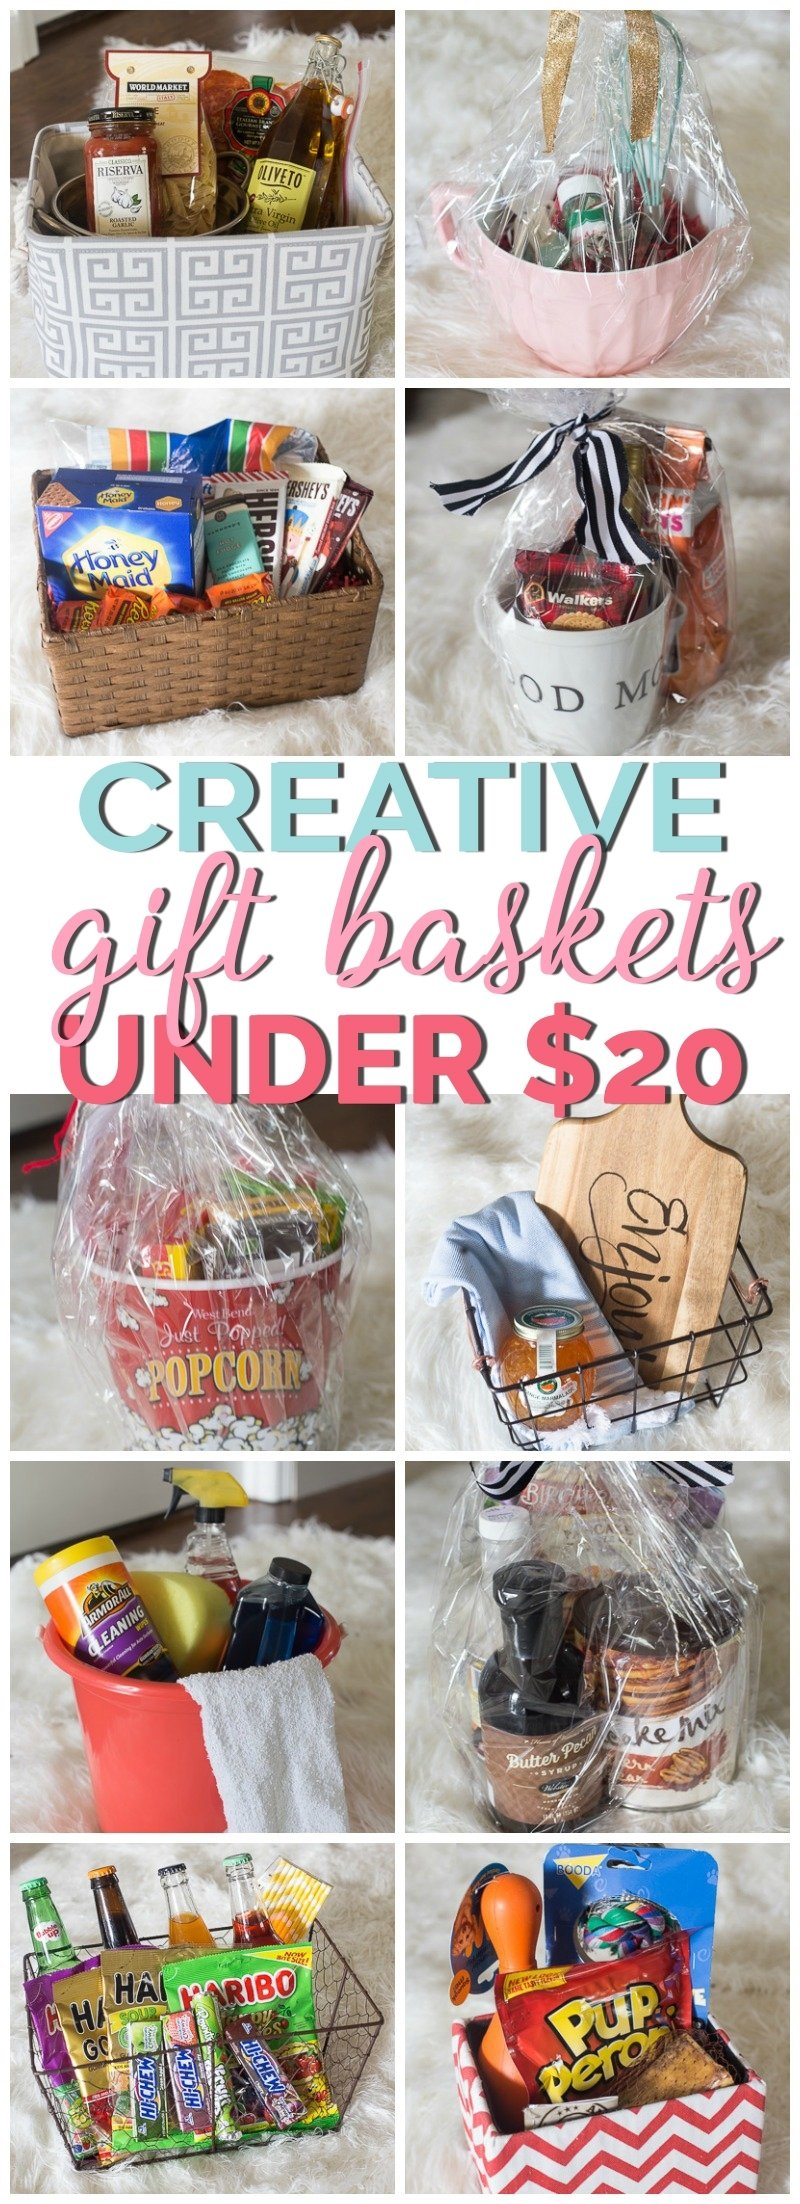 10 Fashionable Ideas For A Gift Basket gift basket ideas under 20 2020